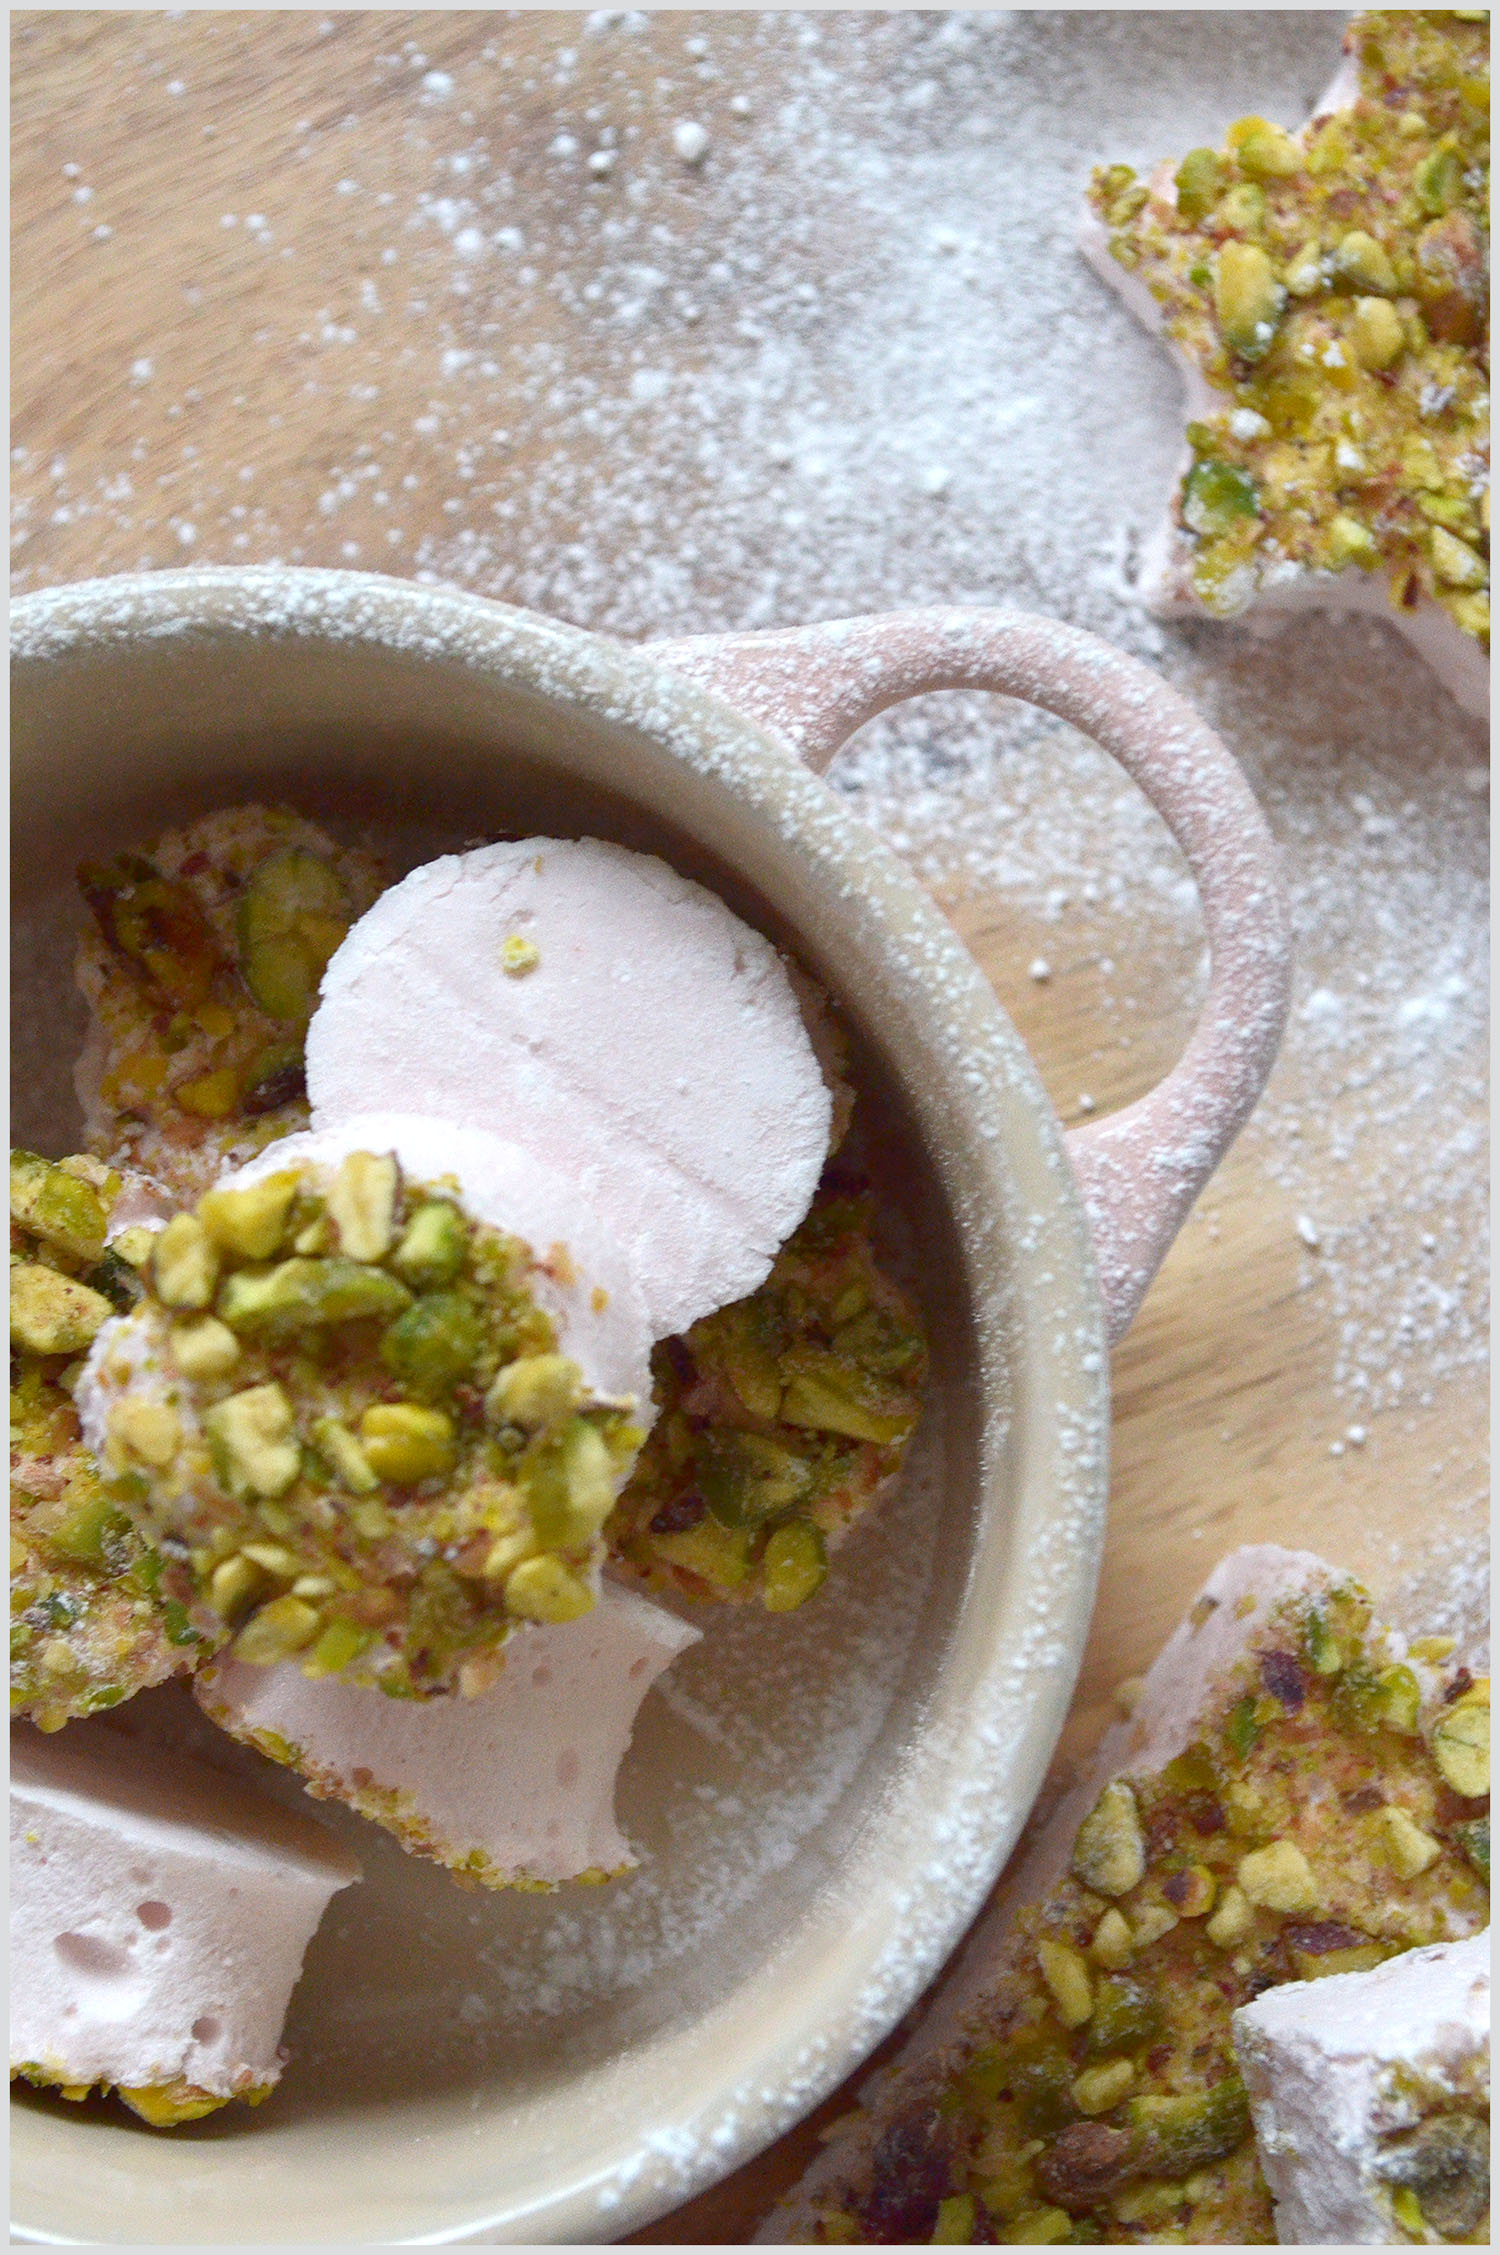 Homemade rose and pistachio marshmallows